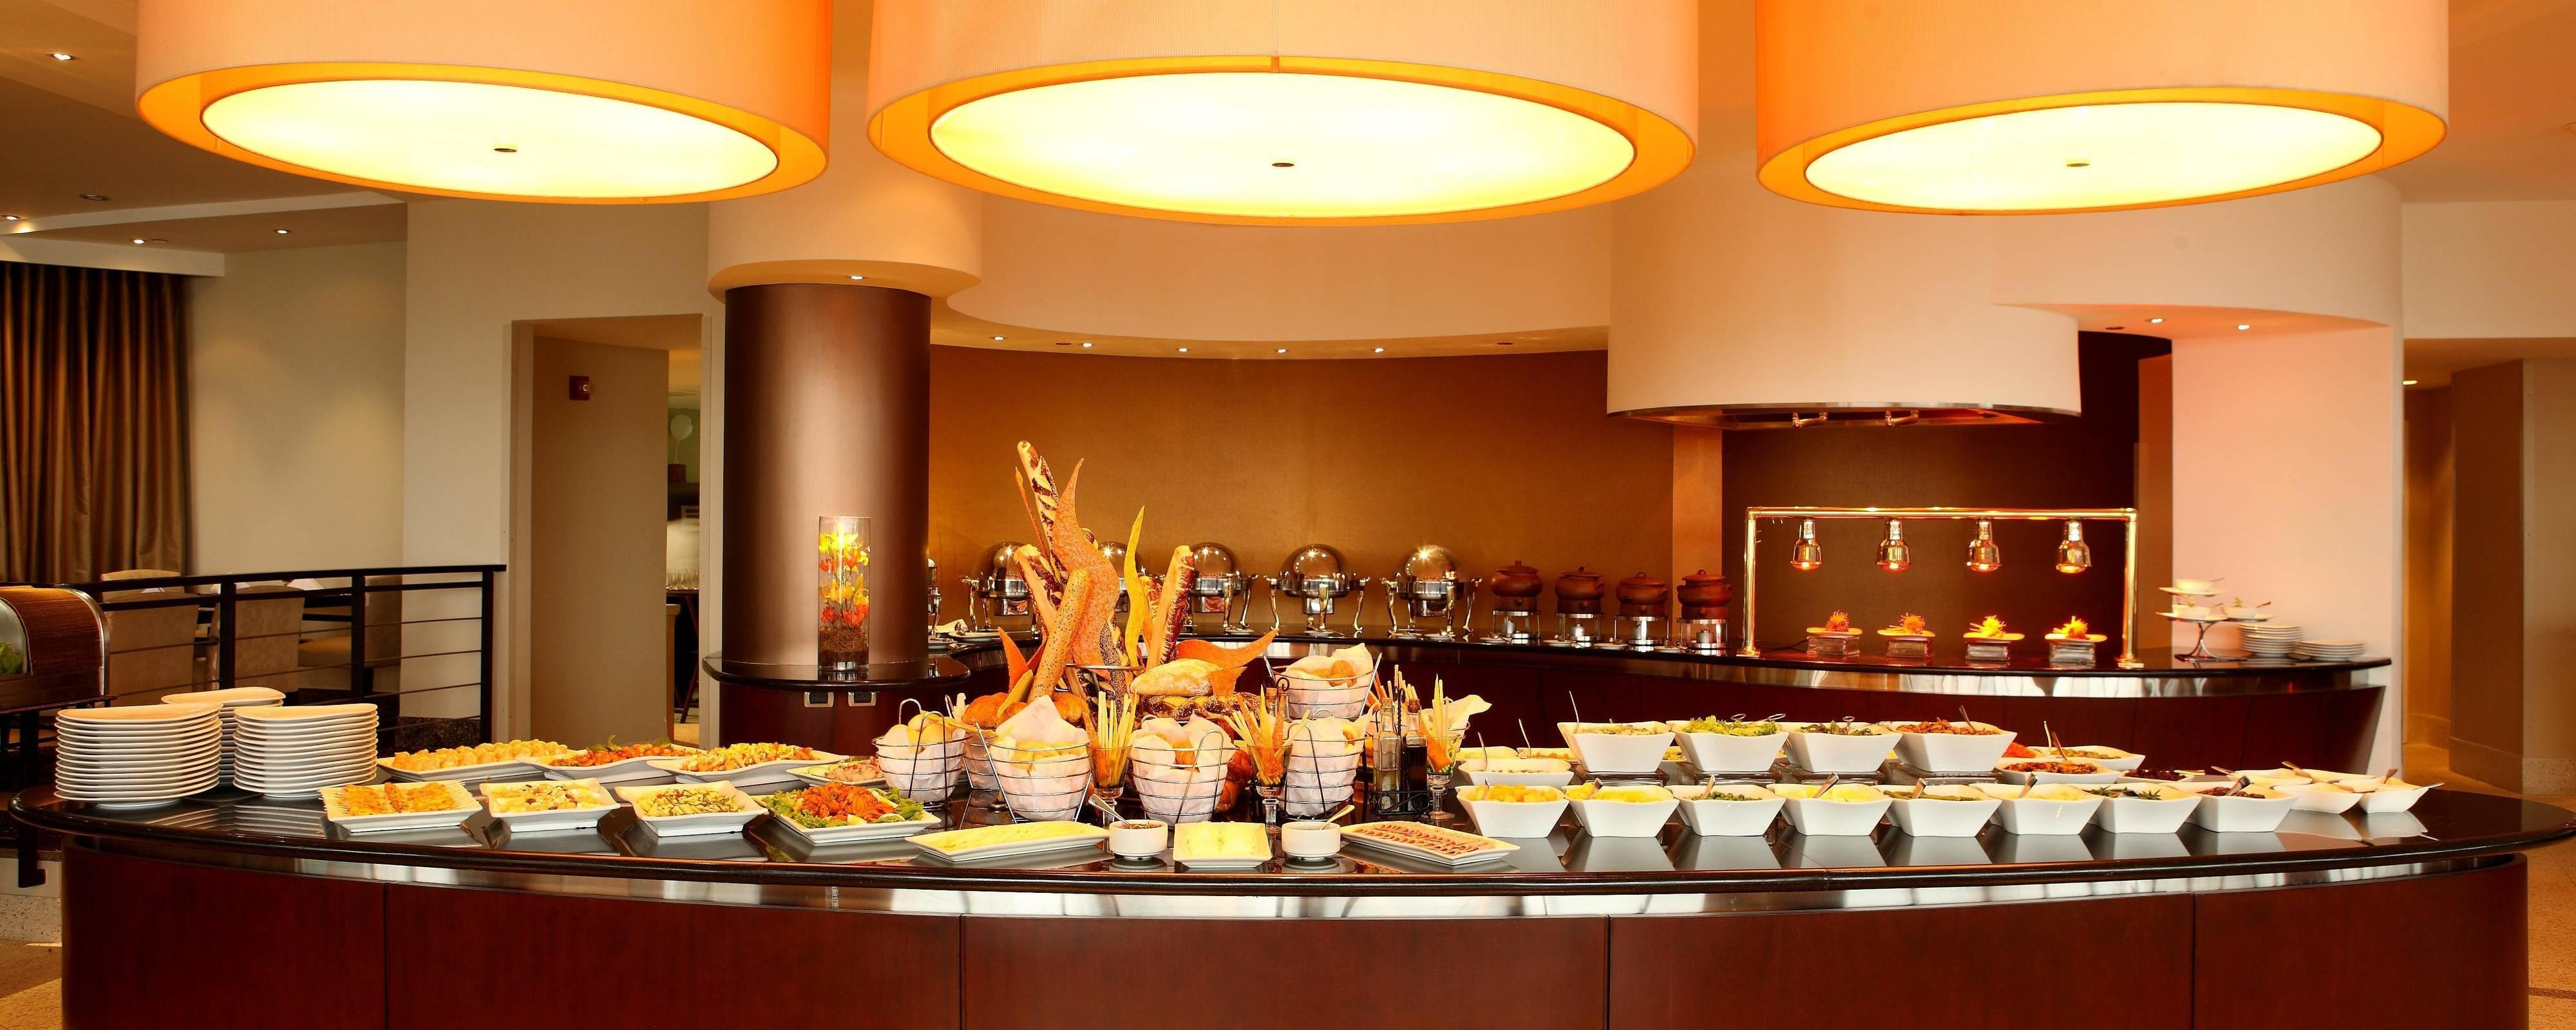 Admirable Lima Peru Restaurants In Miraflores Jw Marriott Hotel Lima Home Interior And Landscaping Palasignezvosmurscom